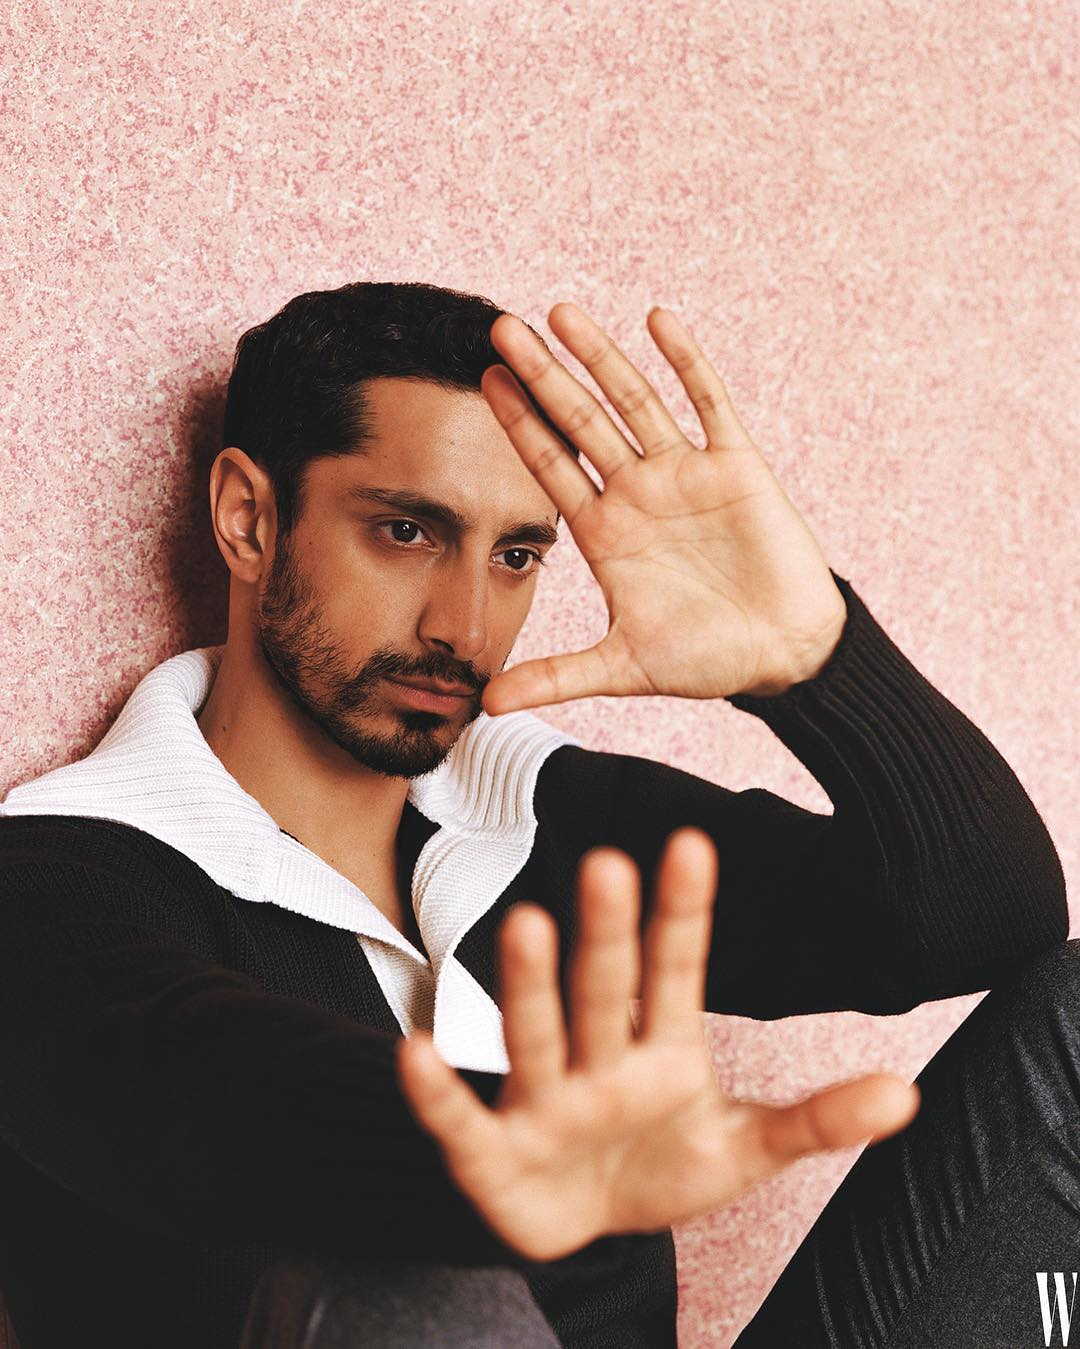 riz ahmed promotes sufi side of islam in latest instagram post